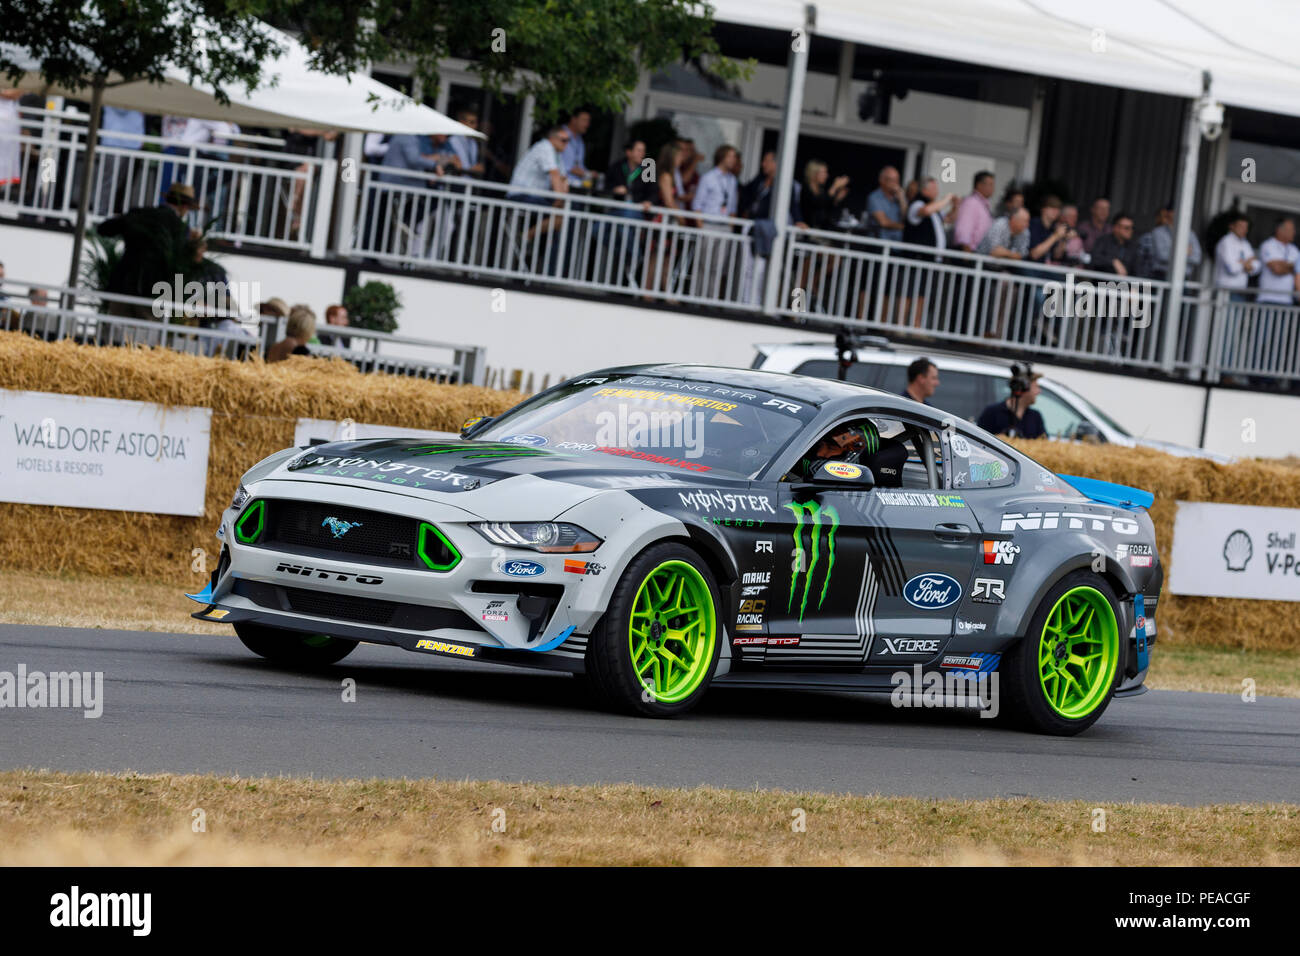 2018 Ford Mustang RTR Drift car with driver Vaughn Gittin Jr at the 2018 Goodwood Festival of Speed, Sussex, UK. - Stock Image